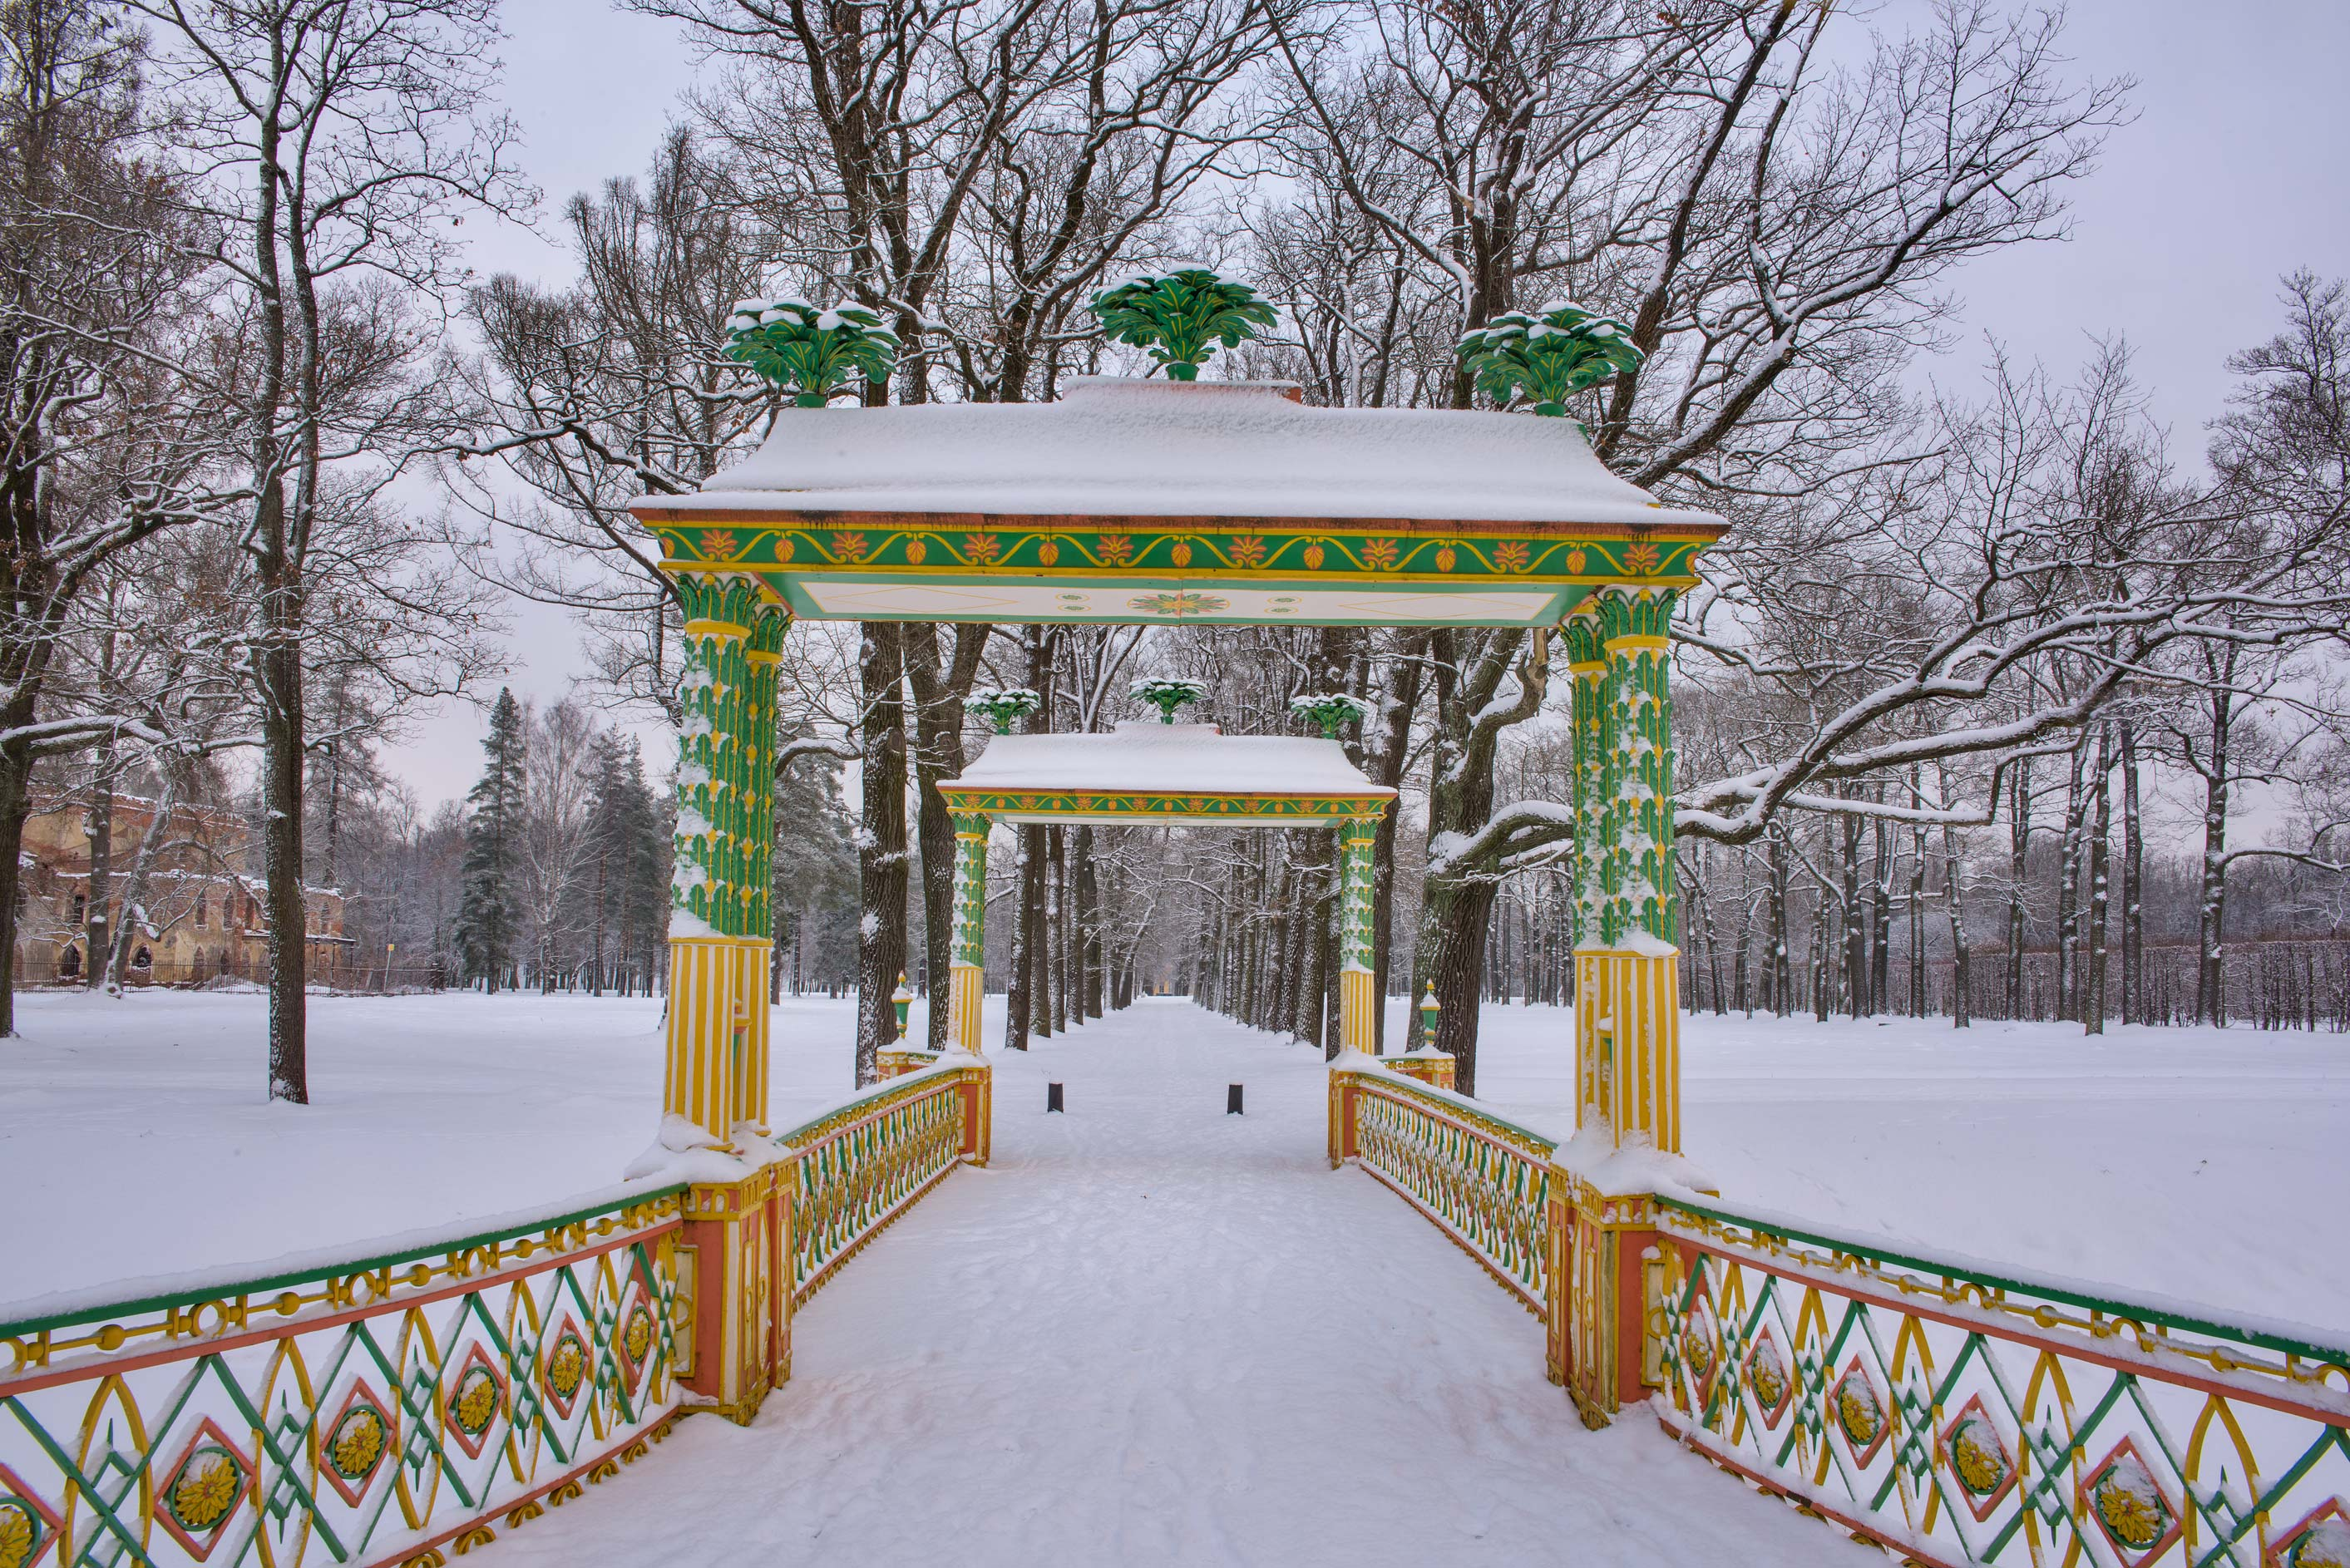 One of Chinese bridges in Alexander Park. Pushkin...Selo) near St.Petersburg, Russia